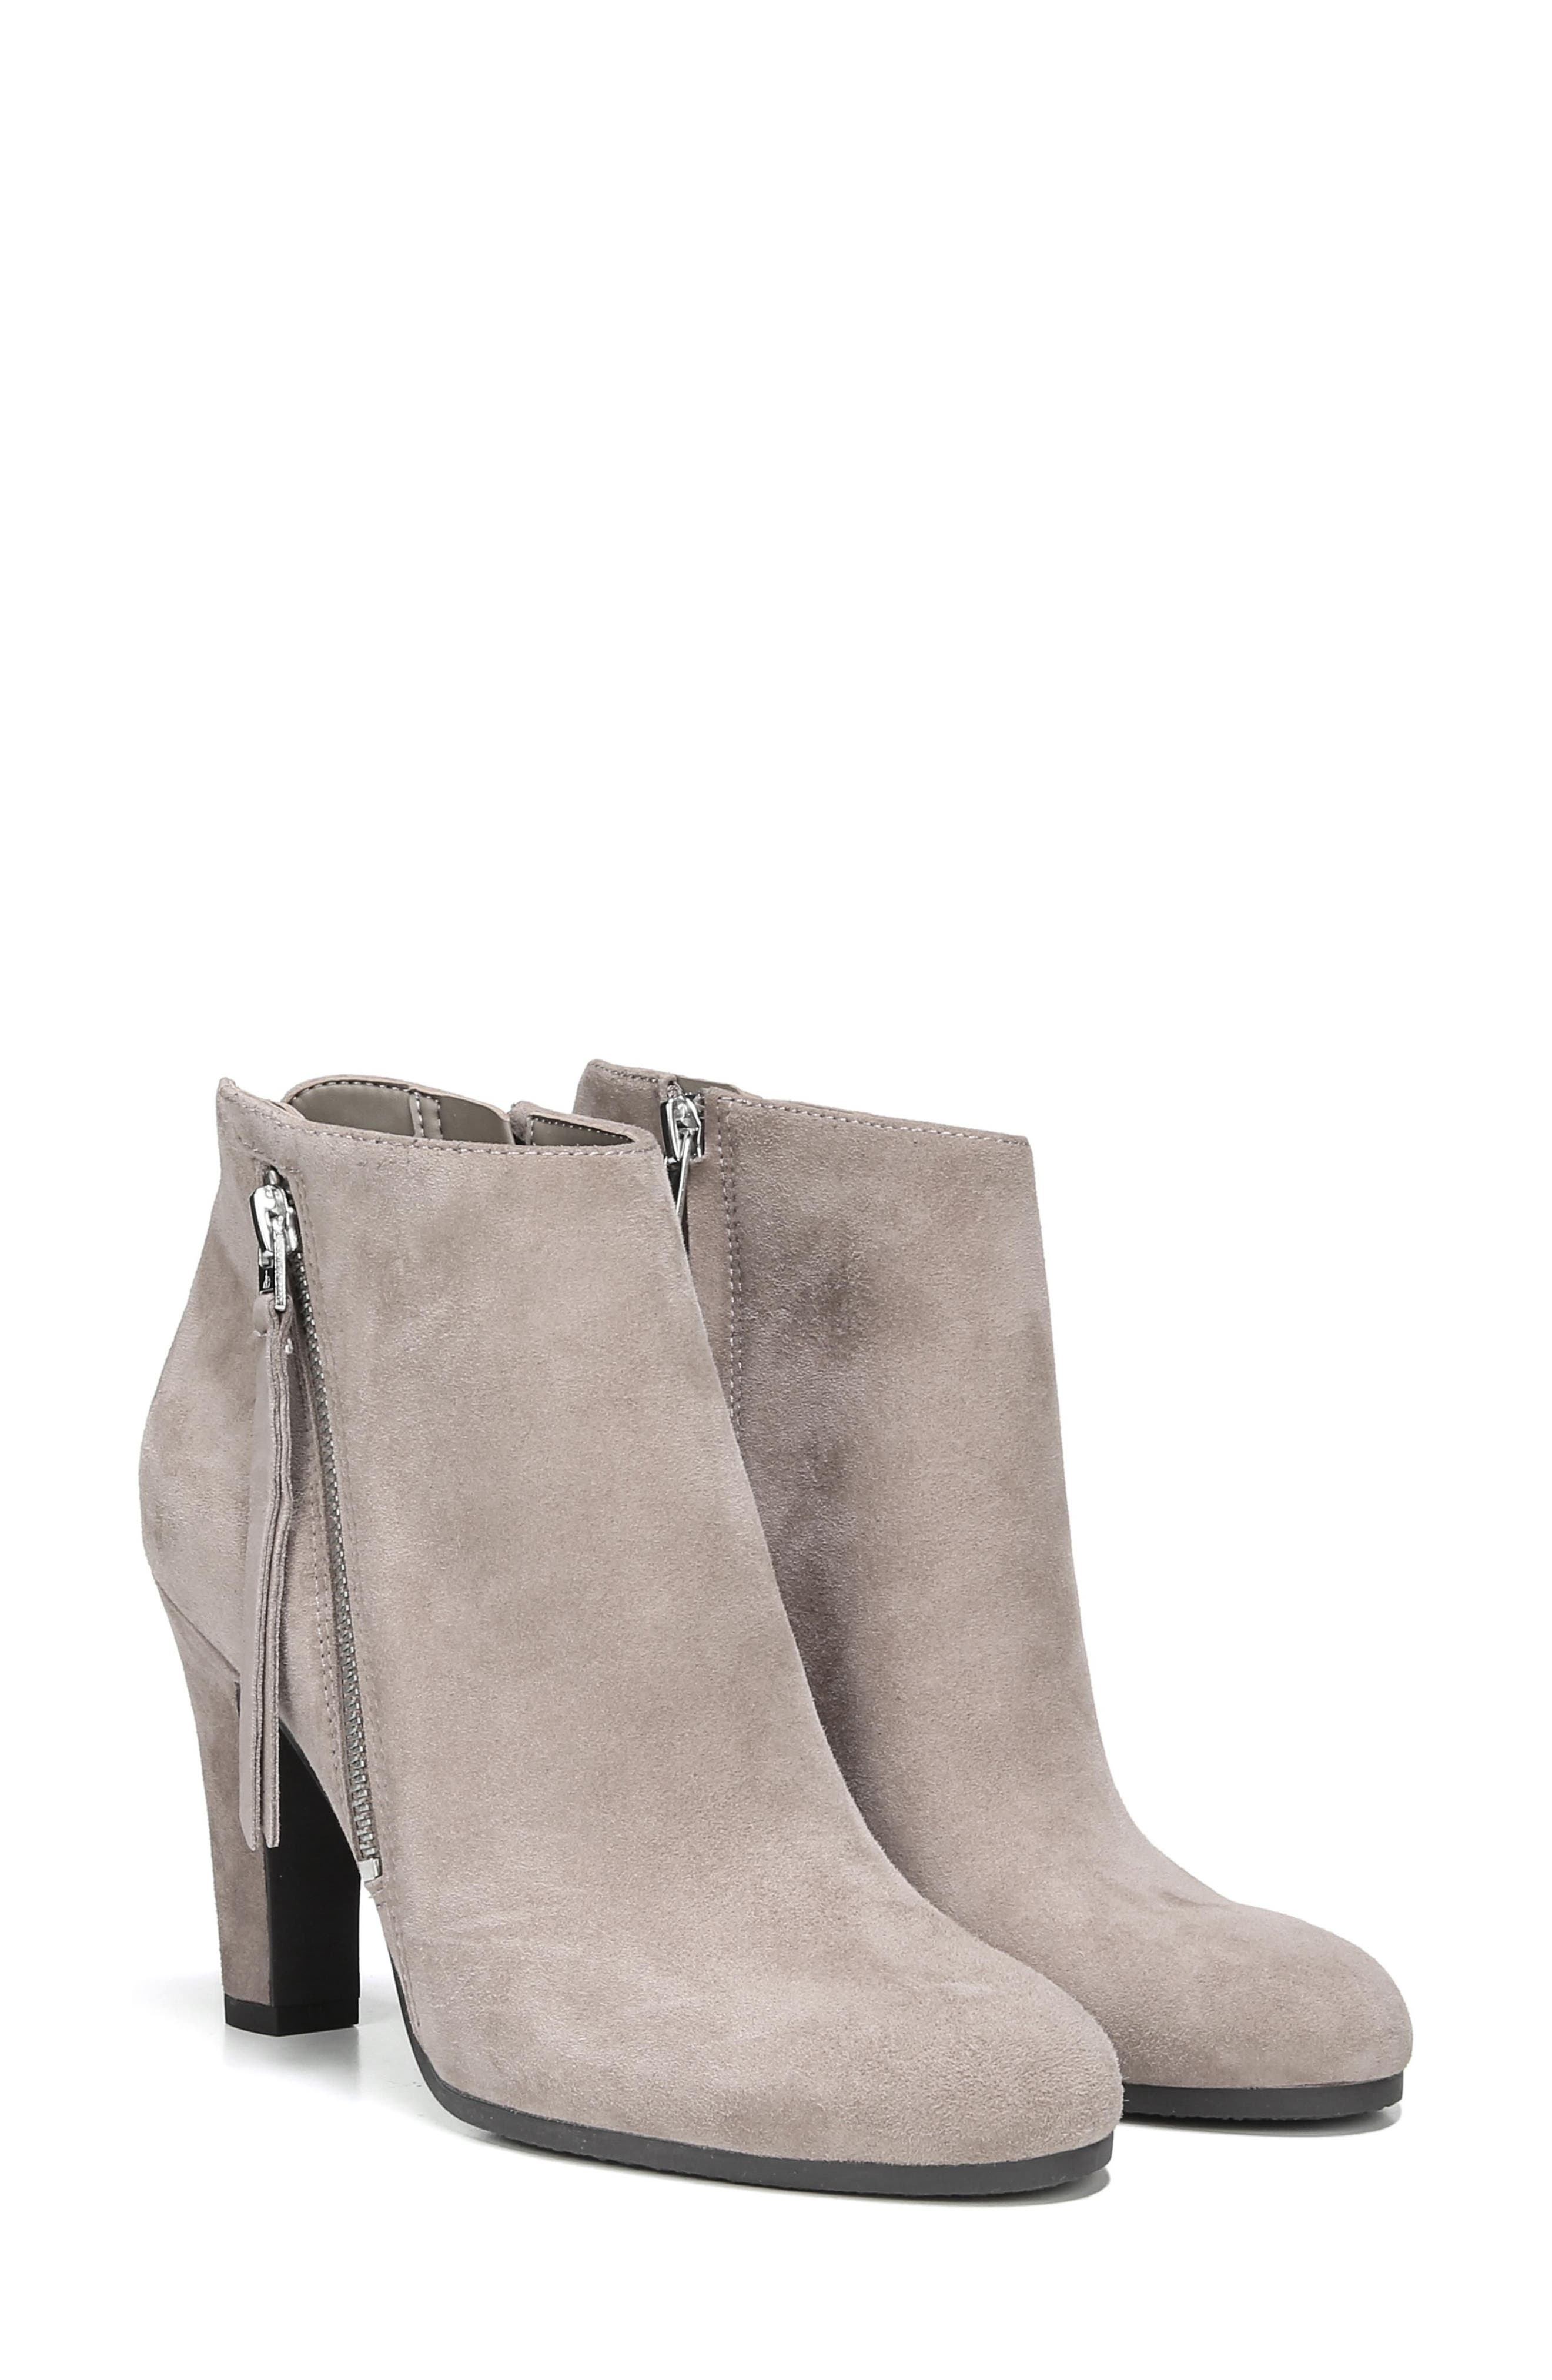 Sadee Angle Zip Bootie,                             Alternate thumbnail 8, color,                             NEW PUTTY SUEDE